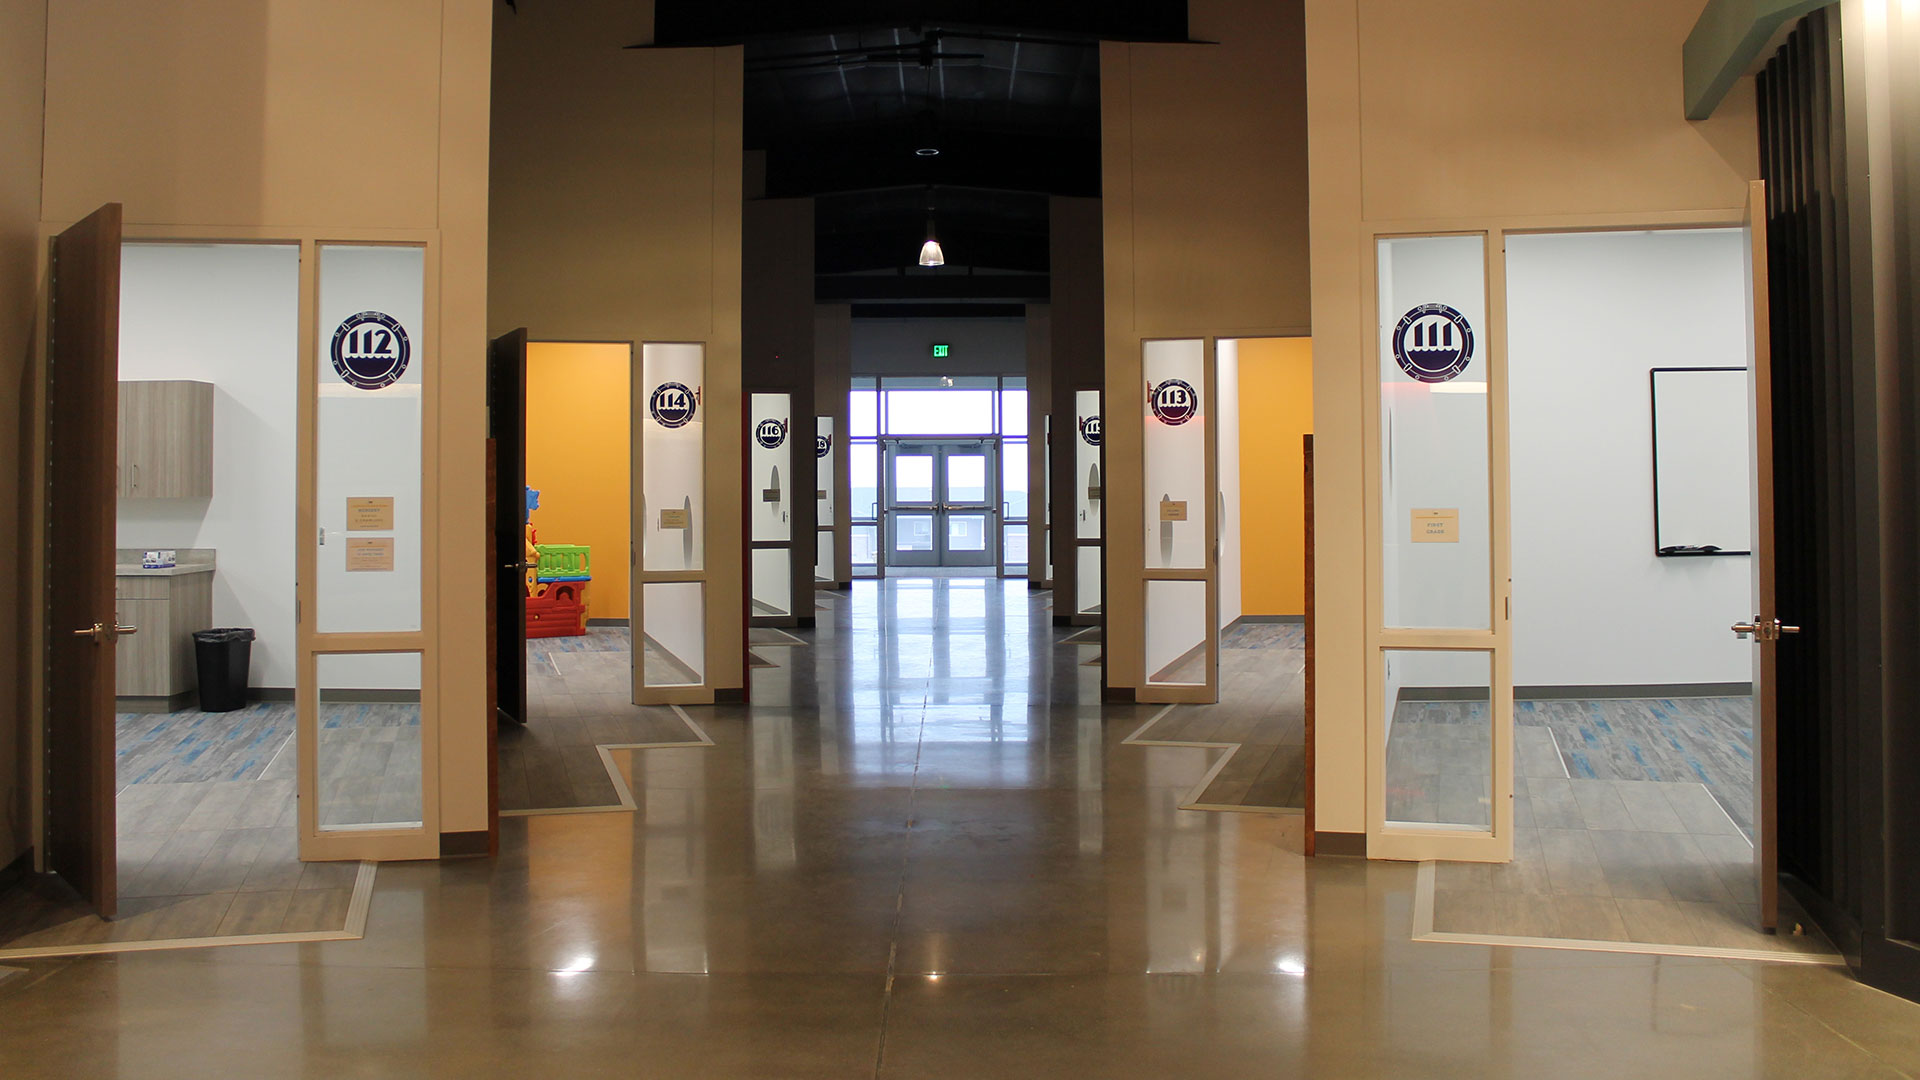 Classroom doors in WE Kids area at The Water's Edge Church in Omaha, NE